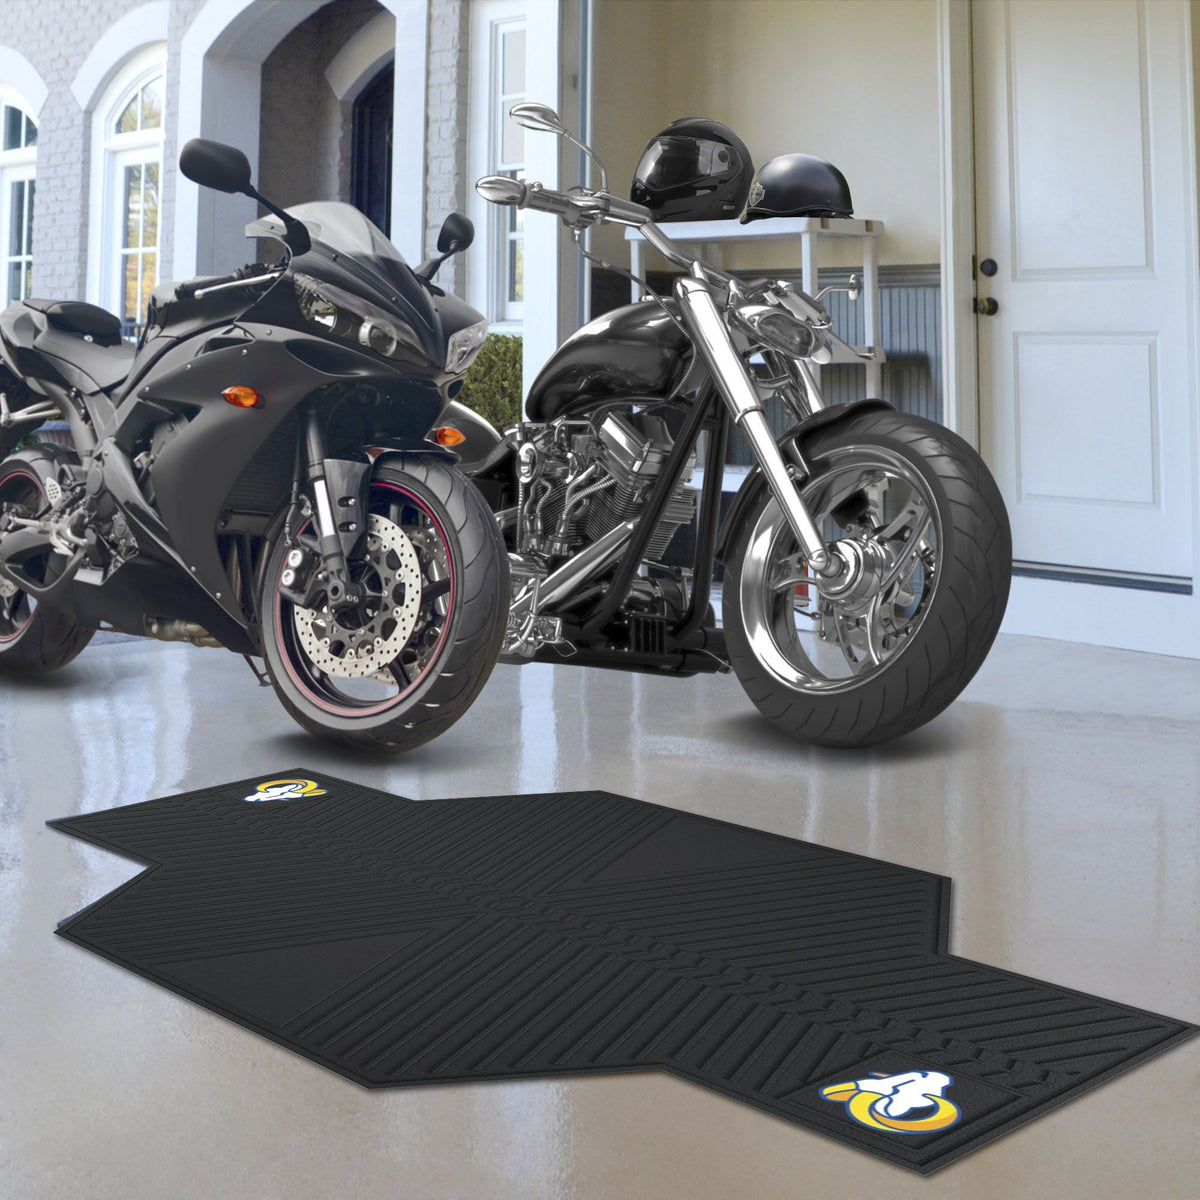 "NFL - Motorcycle Mat, 82.5"" x 42"" NFL Mats, Motorcycle Accessory, Motorcycle Mat, NFL, Auto Fan Mats Los Angeles Rams"